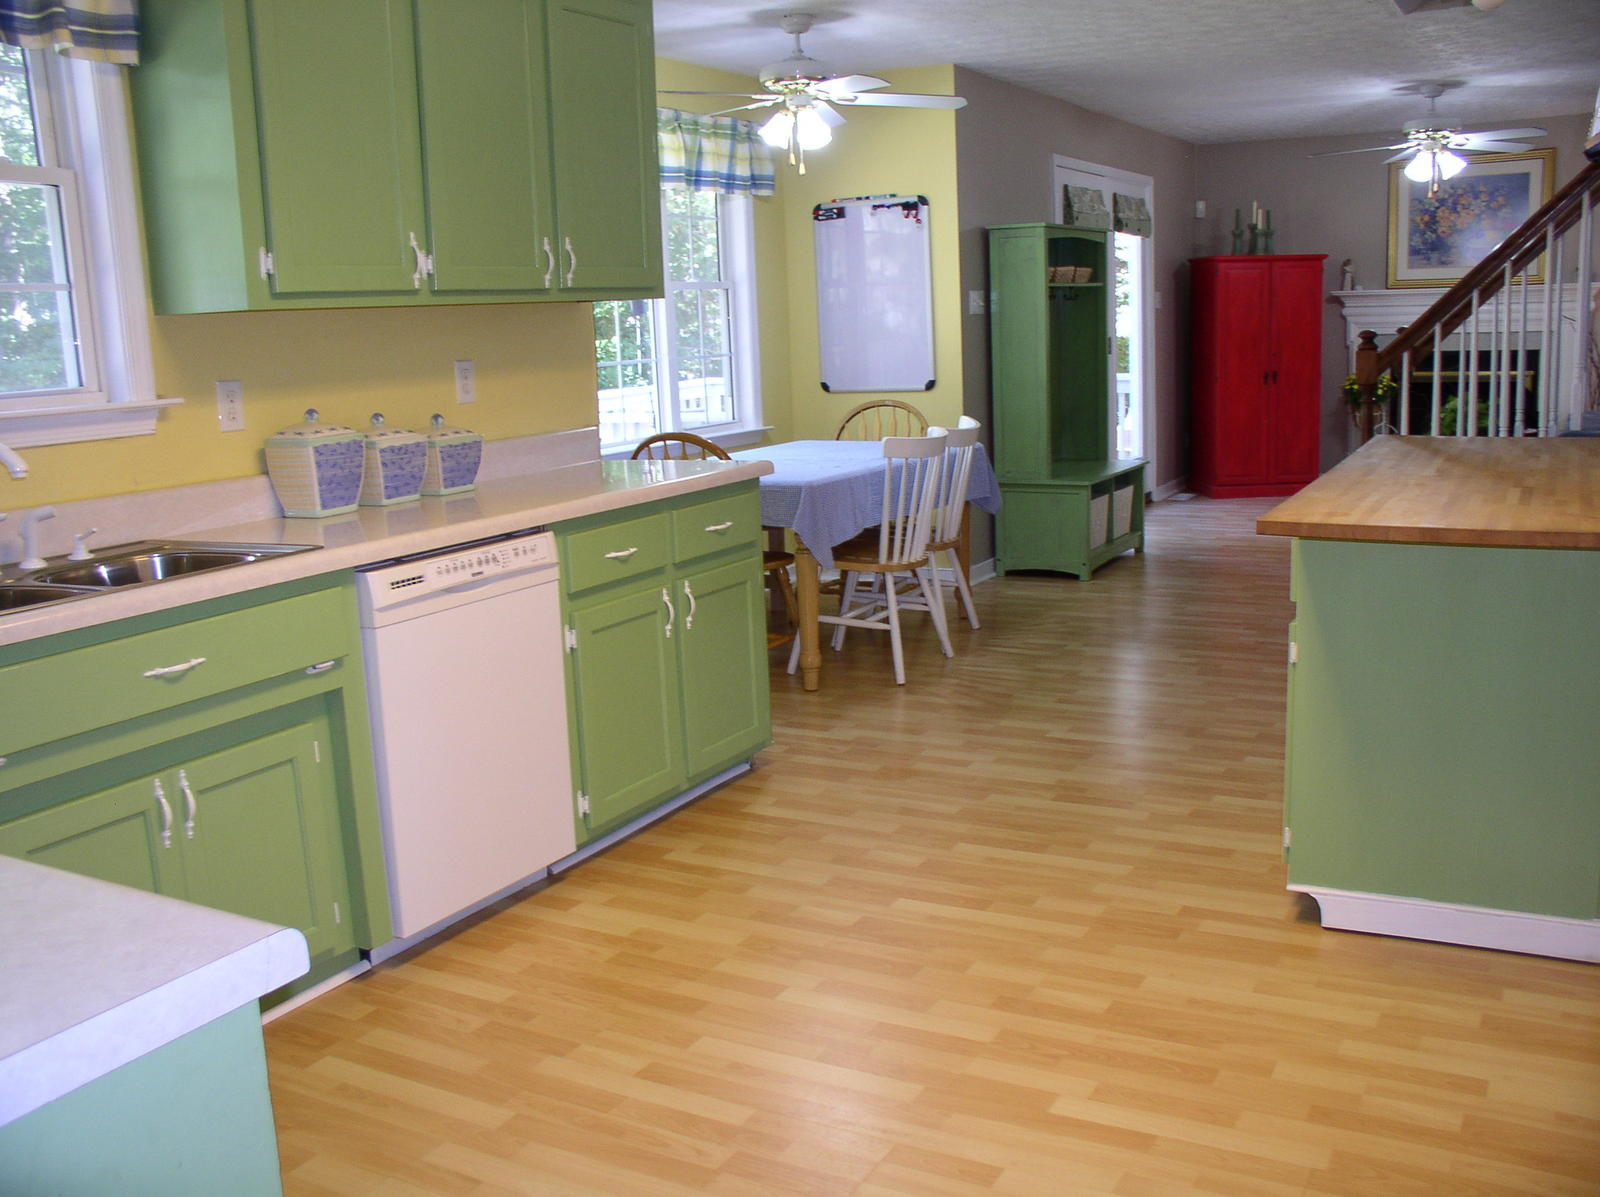 Painting your kitchen cabinets painting tips from the pros for Painting your kitchen cabinets